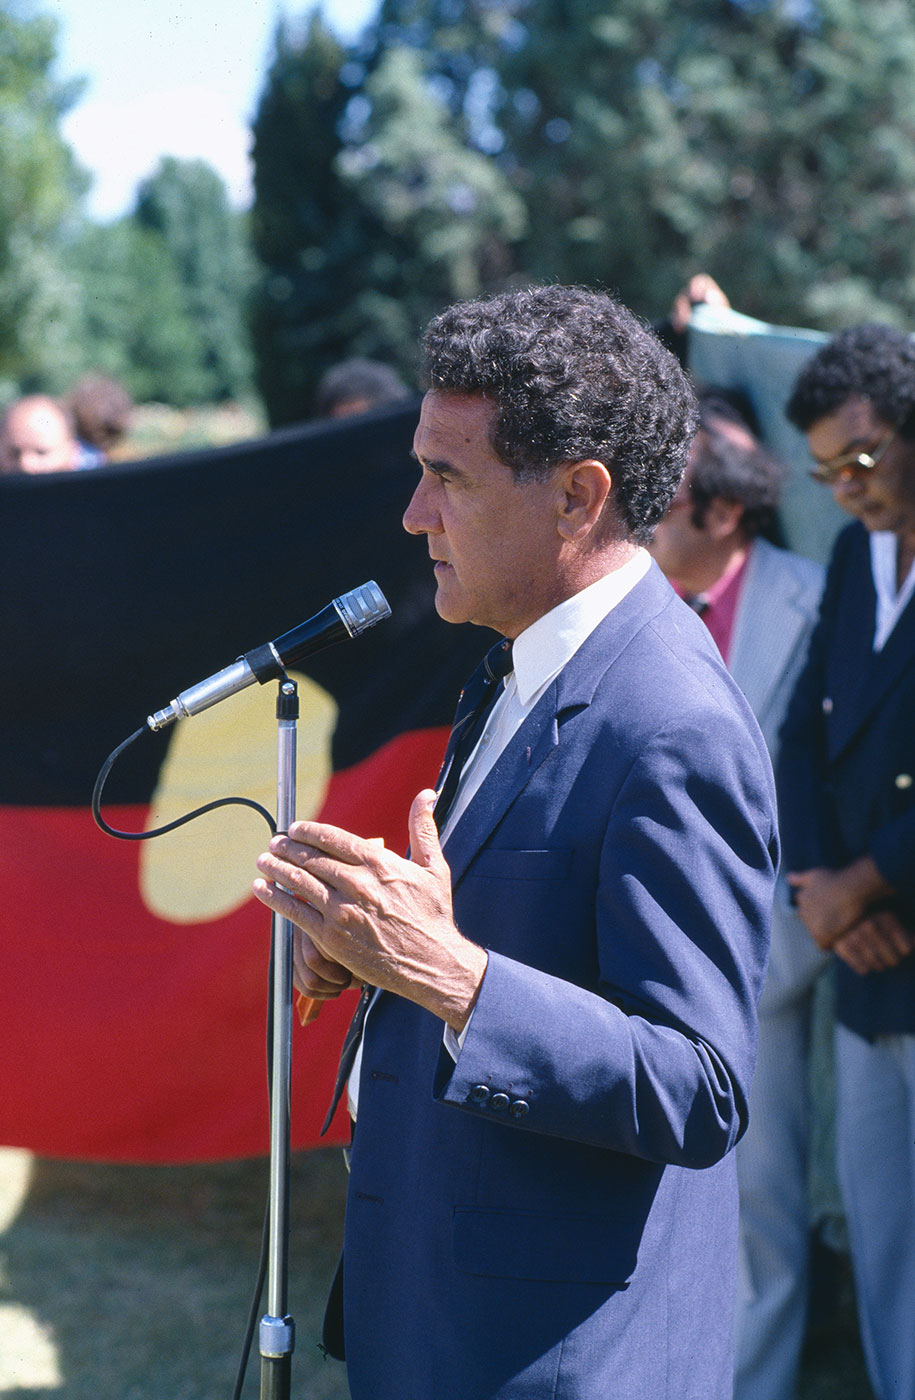 Colour photograph showing Charles Perkins in side profile. He wears a dark blue jacket, white shirt and black tie and stands speaking at a microphone. An Aboriginal flag is partially visible in the background. - click to view larger image